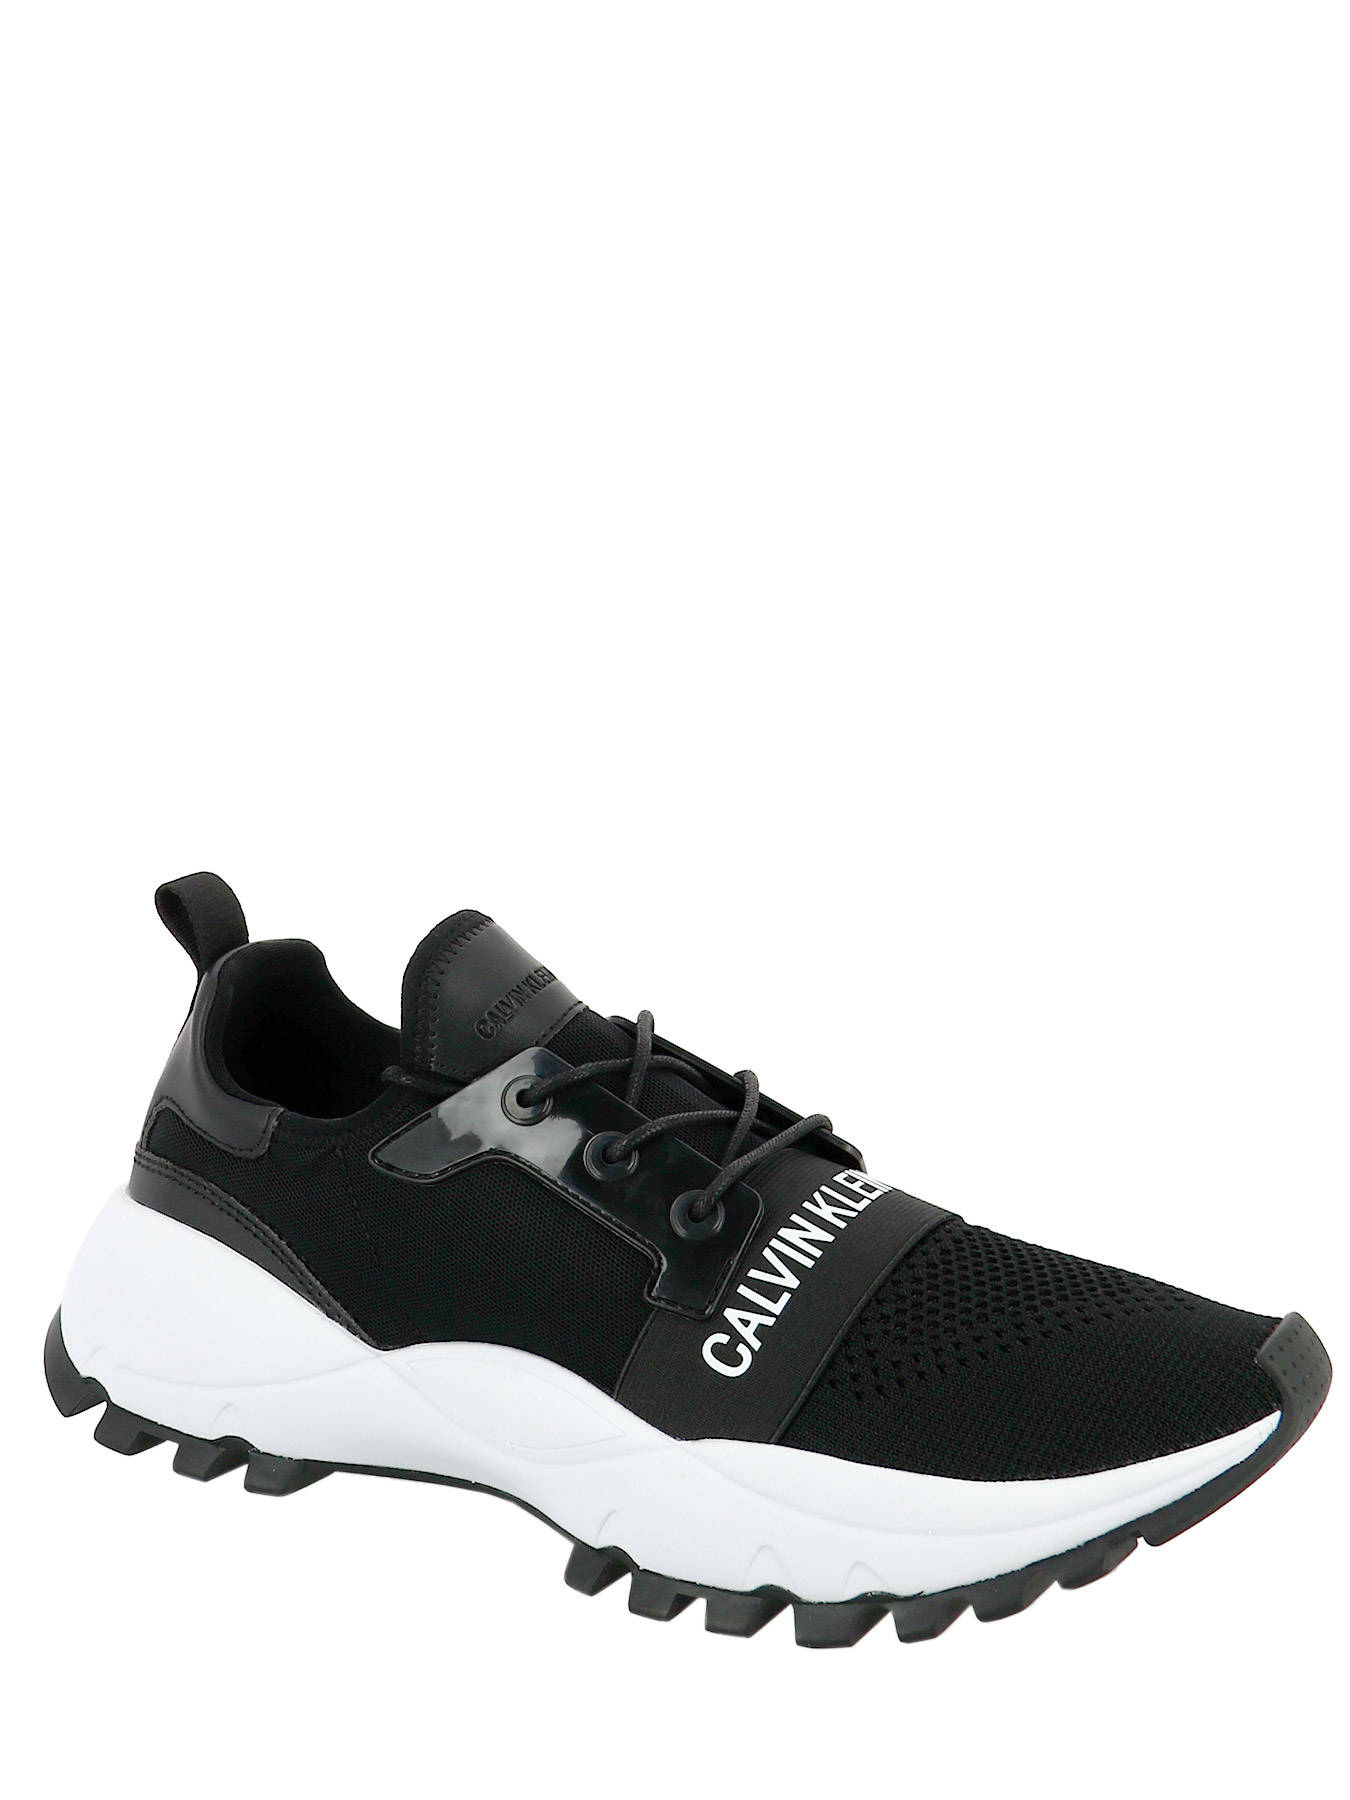 Calvin Klein Jeans Sneakers S0588 - best prices